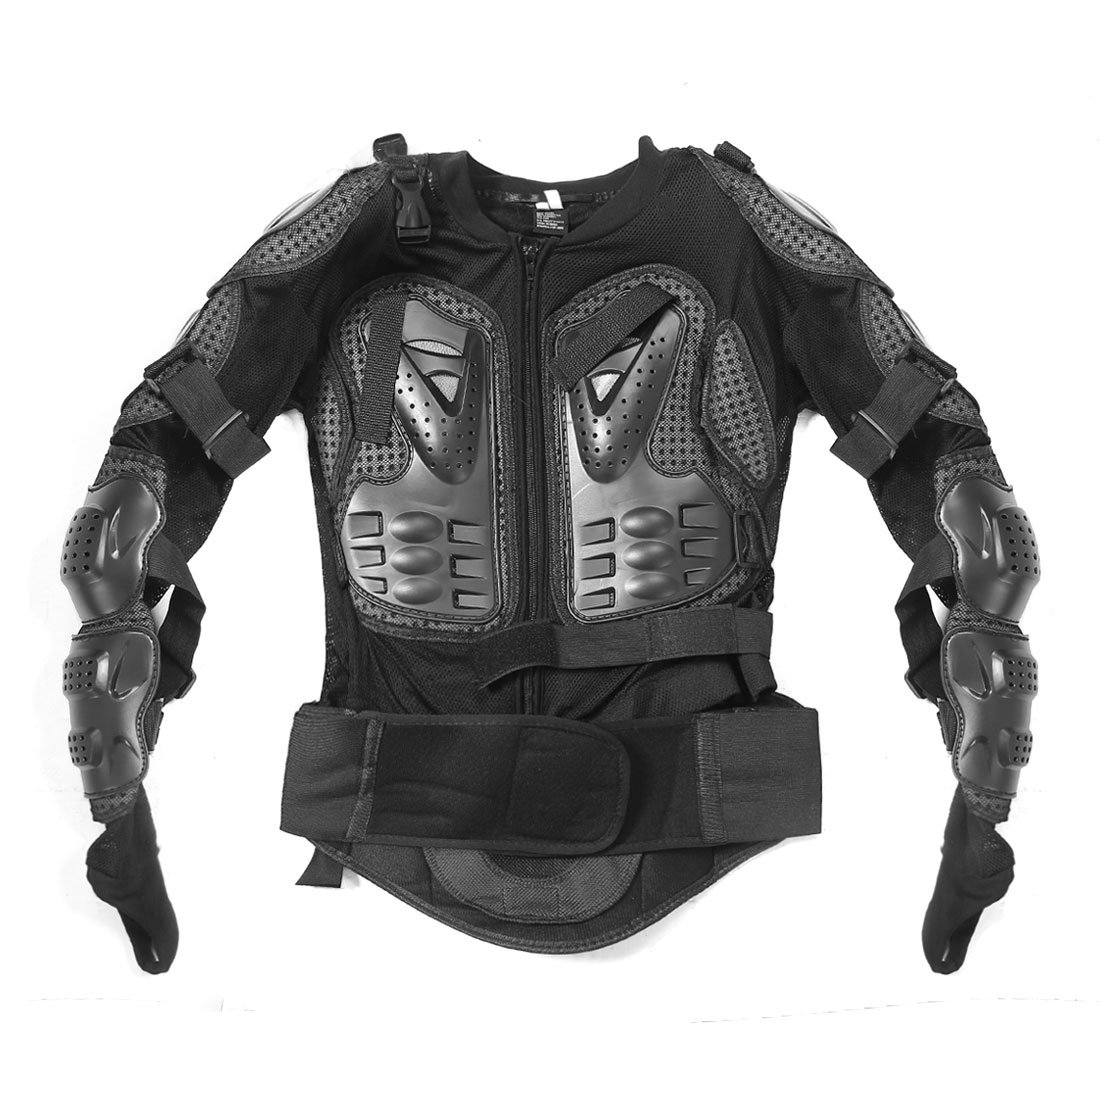 uxcell Motorcycle Motorcross Full Upper Body Armor Shirt Jacket Back Shoulder Protector XXL